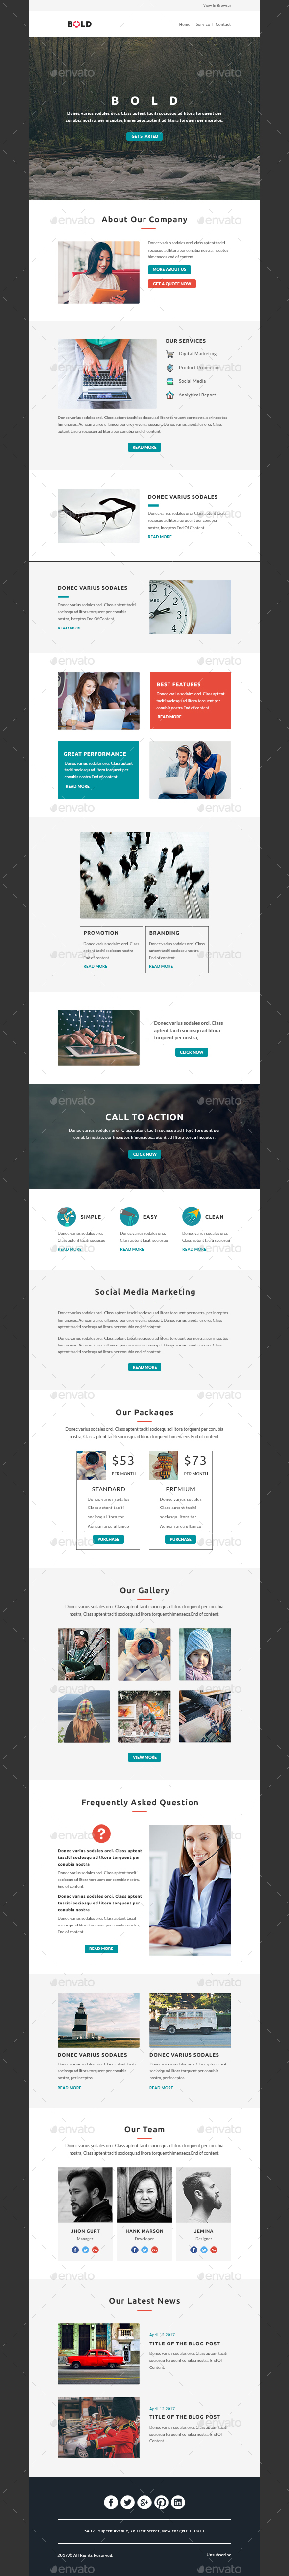 BOLD - Multipurpose Email PSD Template - E-newsletters Web Elements